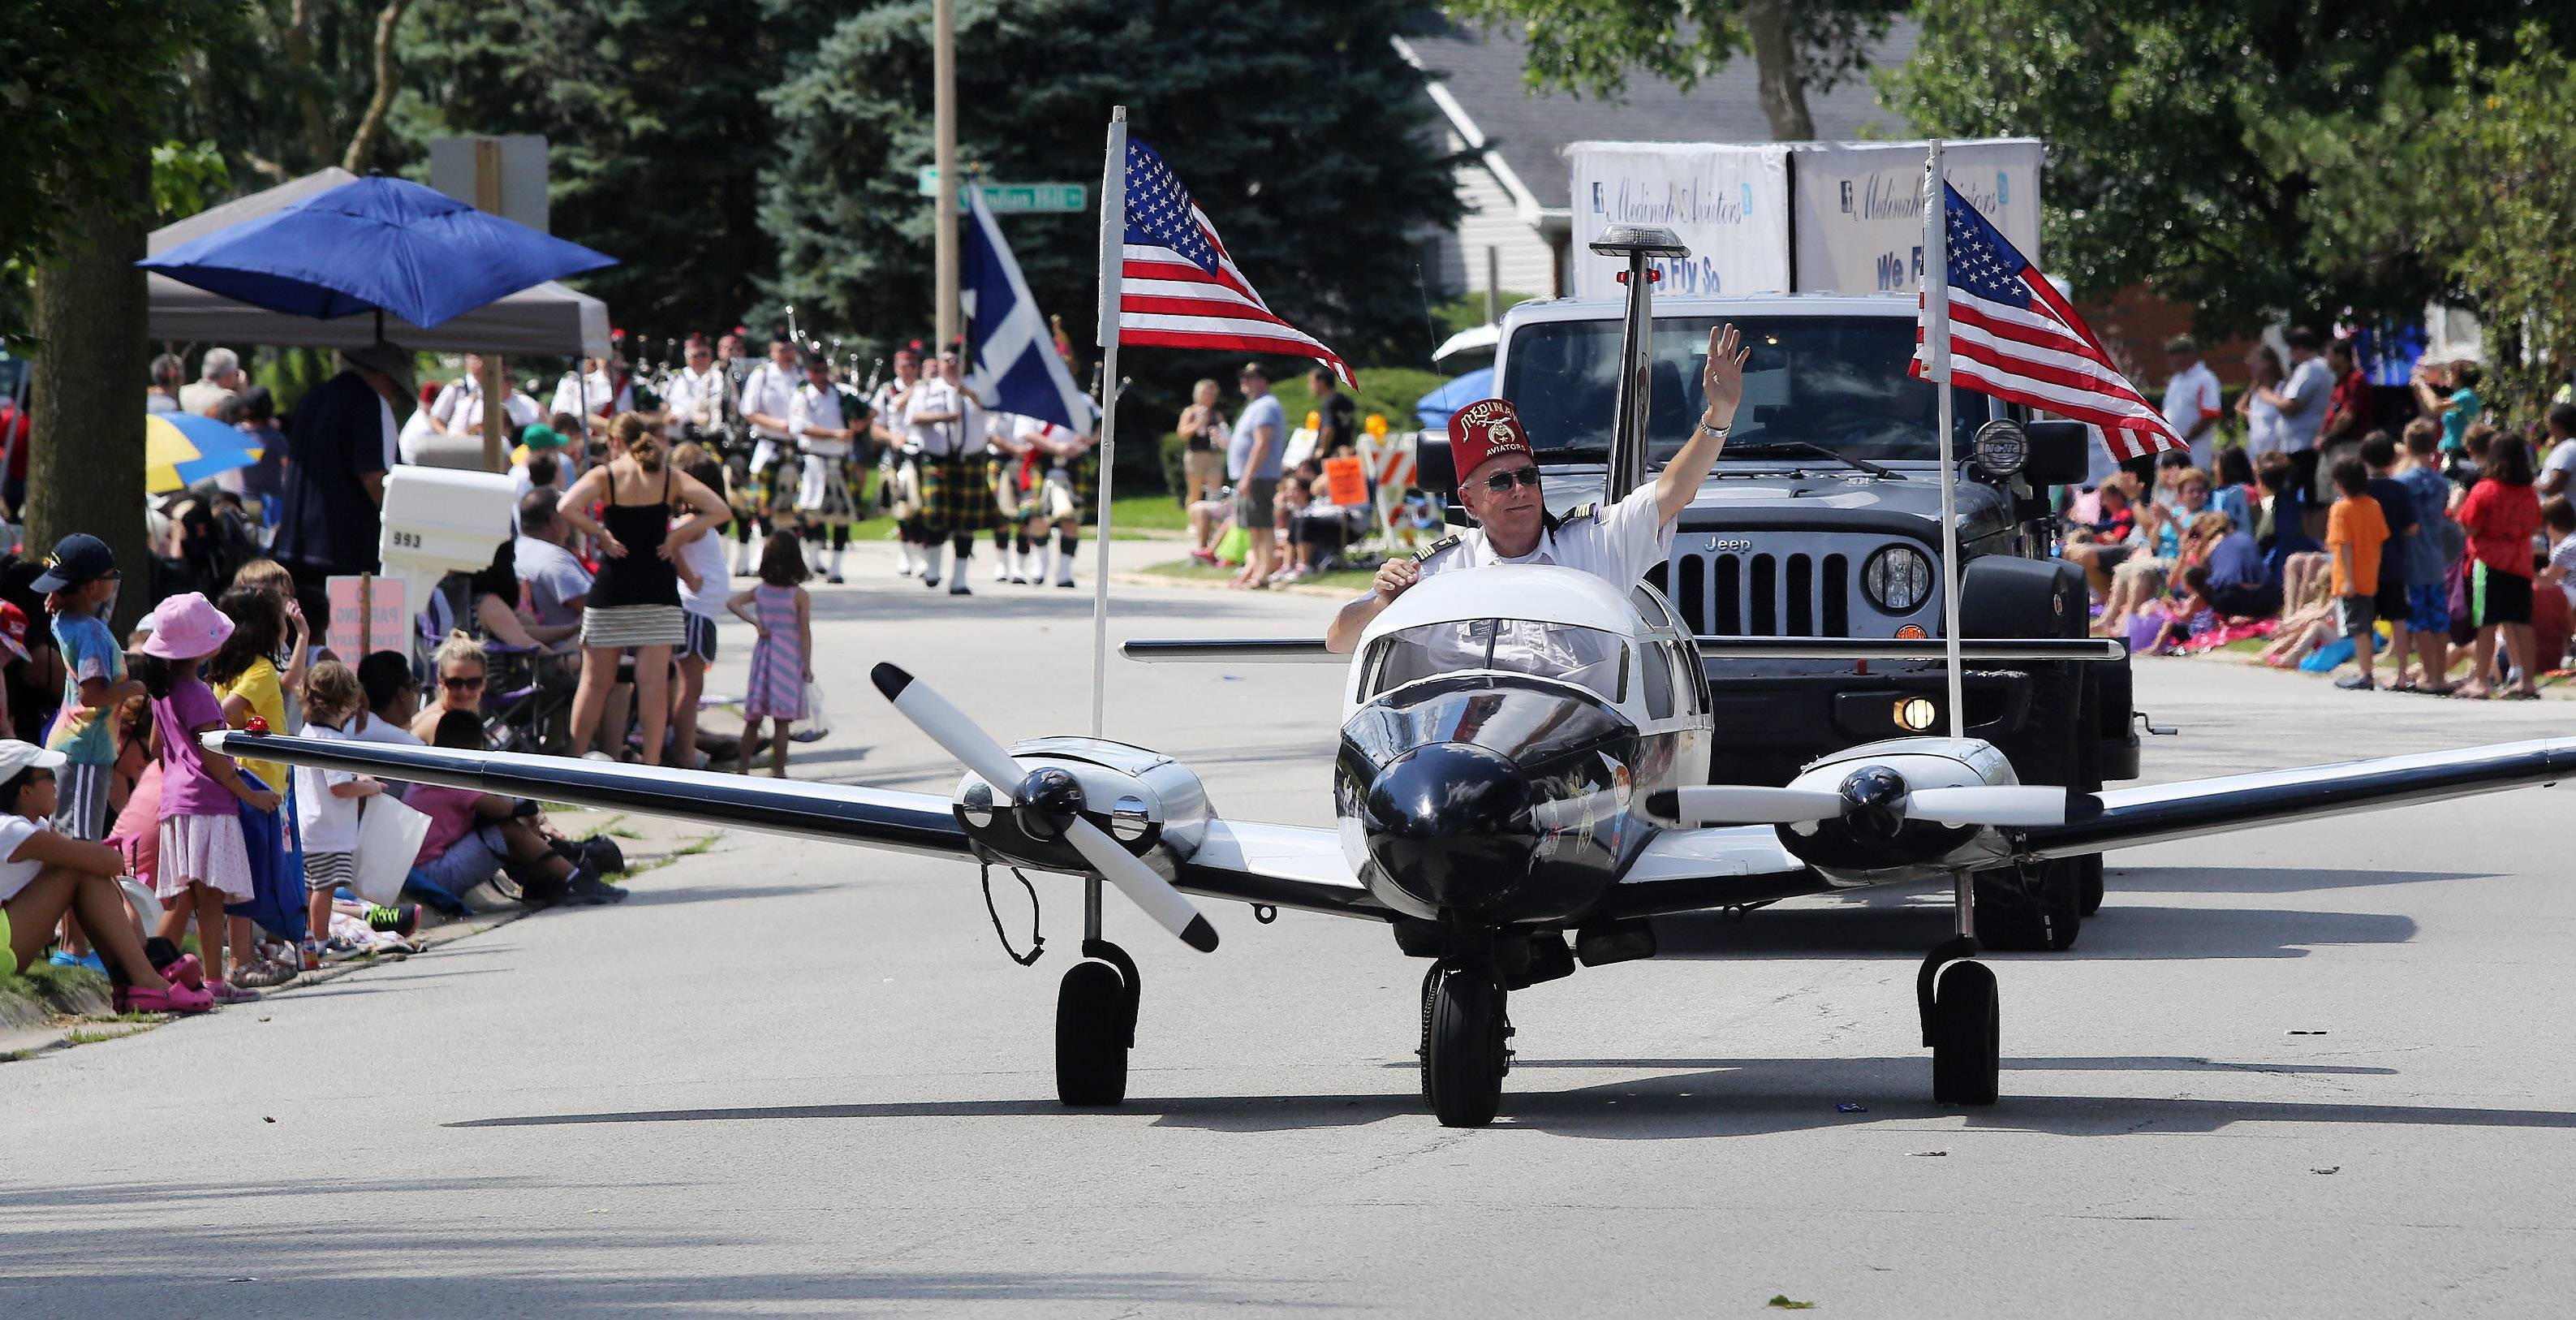 Gerry Olsen of the Medinah Shriner's Aviators rides in a plane Sunday during the Buffalo Grove Days parade Sunday along Bernard Drive. The organization transports children who are burn victims to burn unit hospitals.